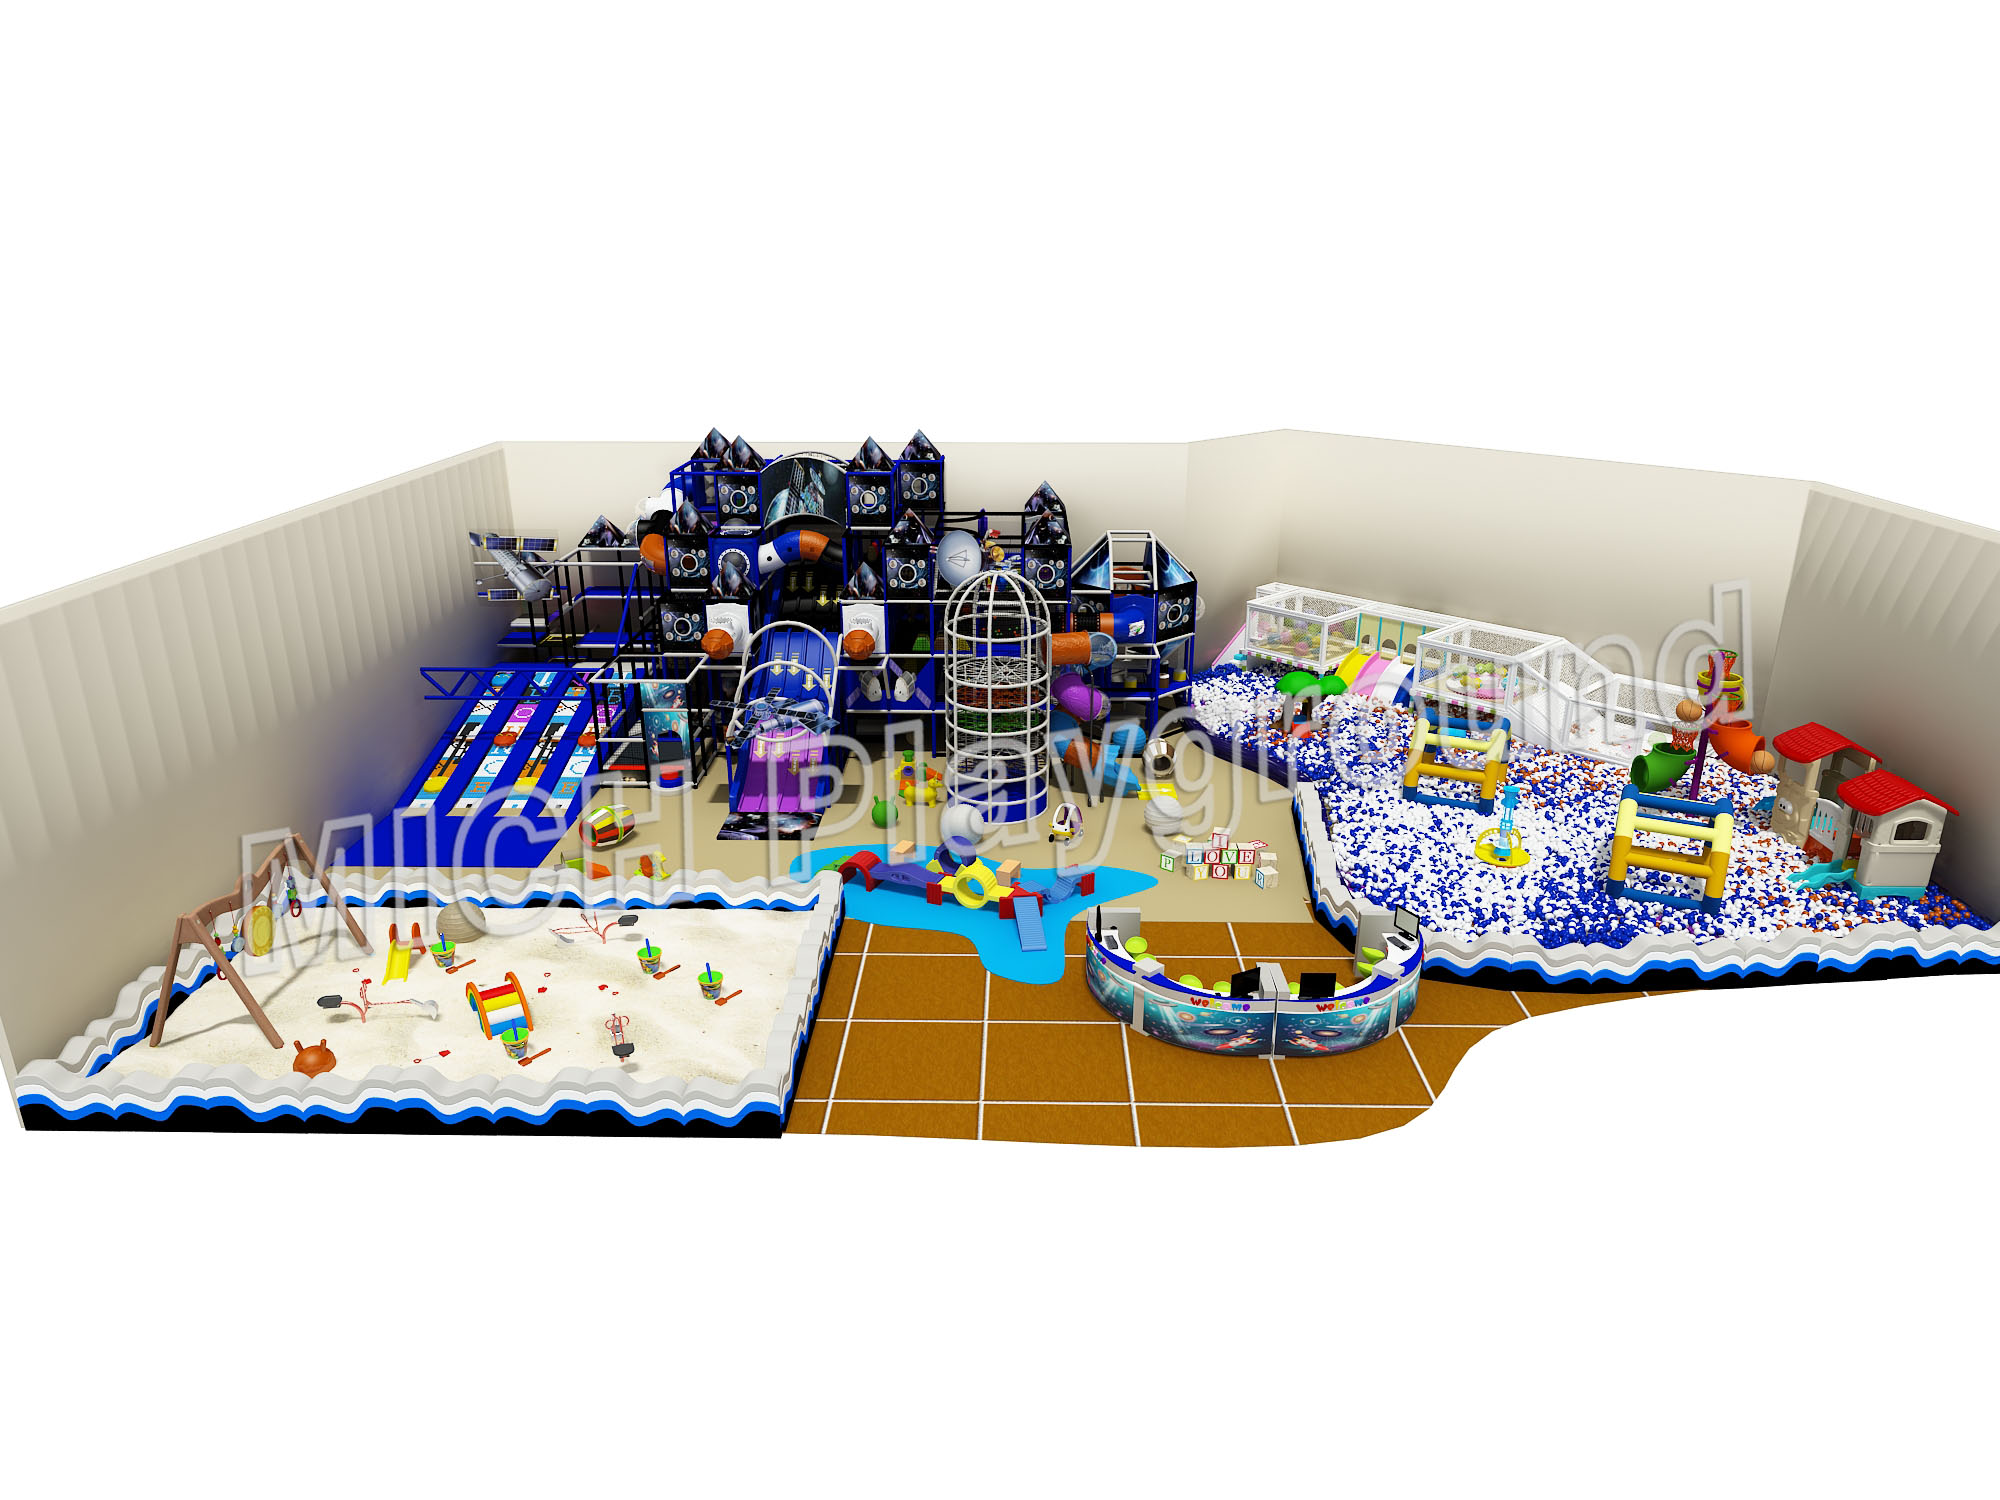 Mich Funny Indoor Amusement Playground 6632B